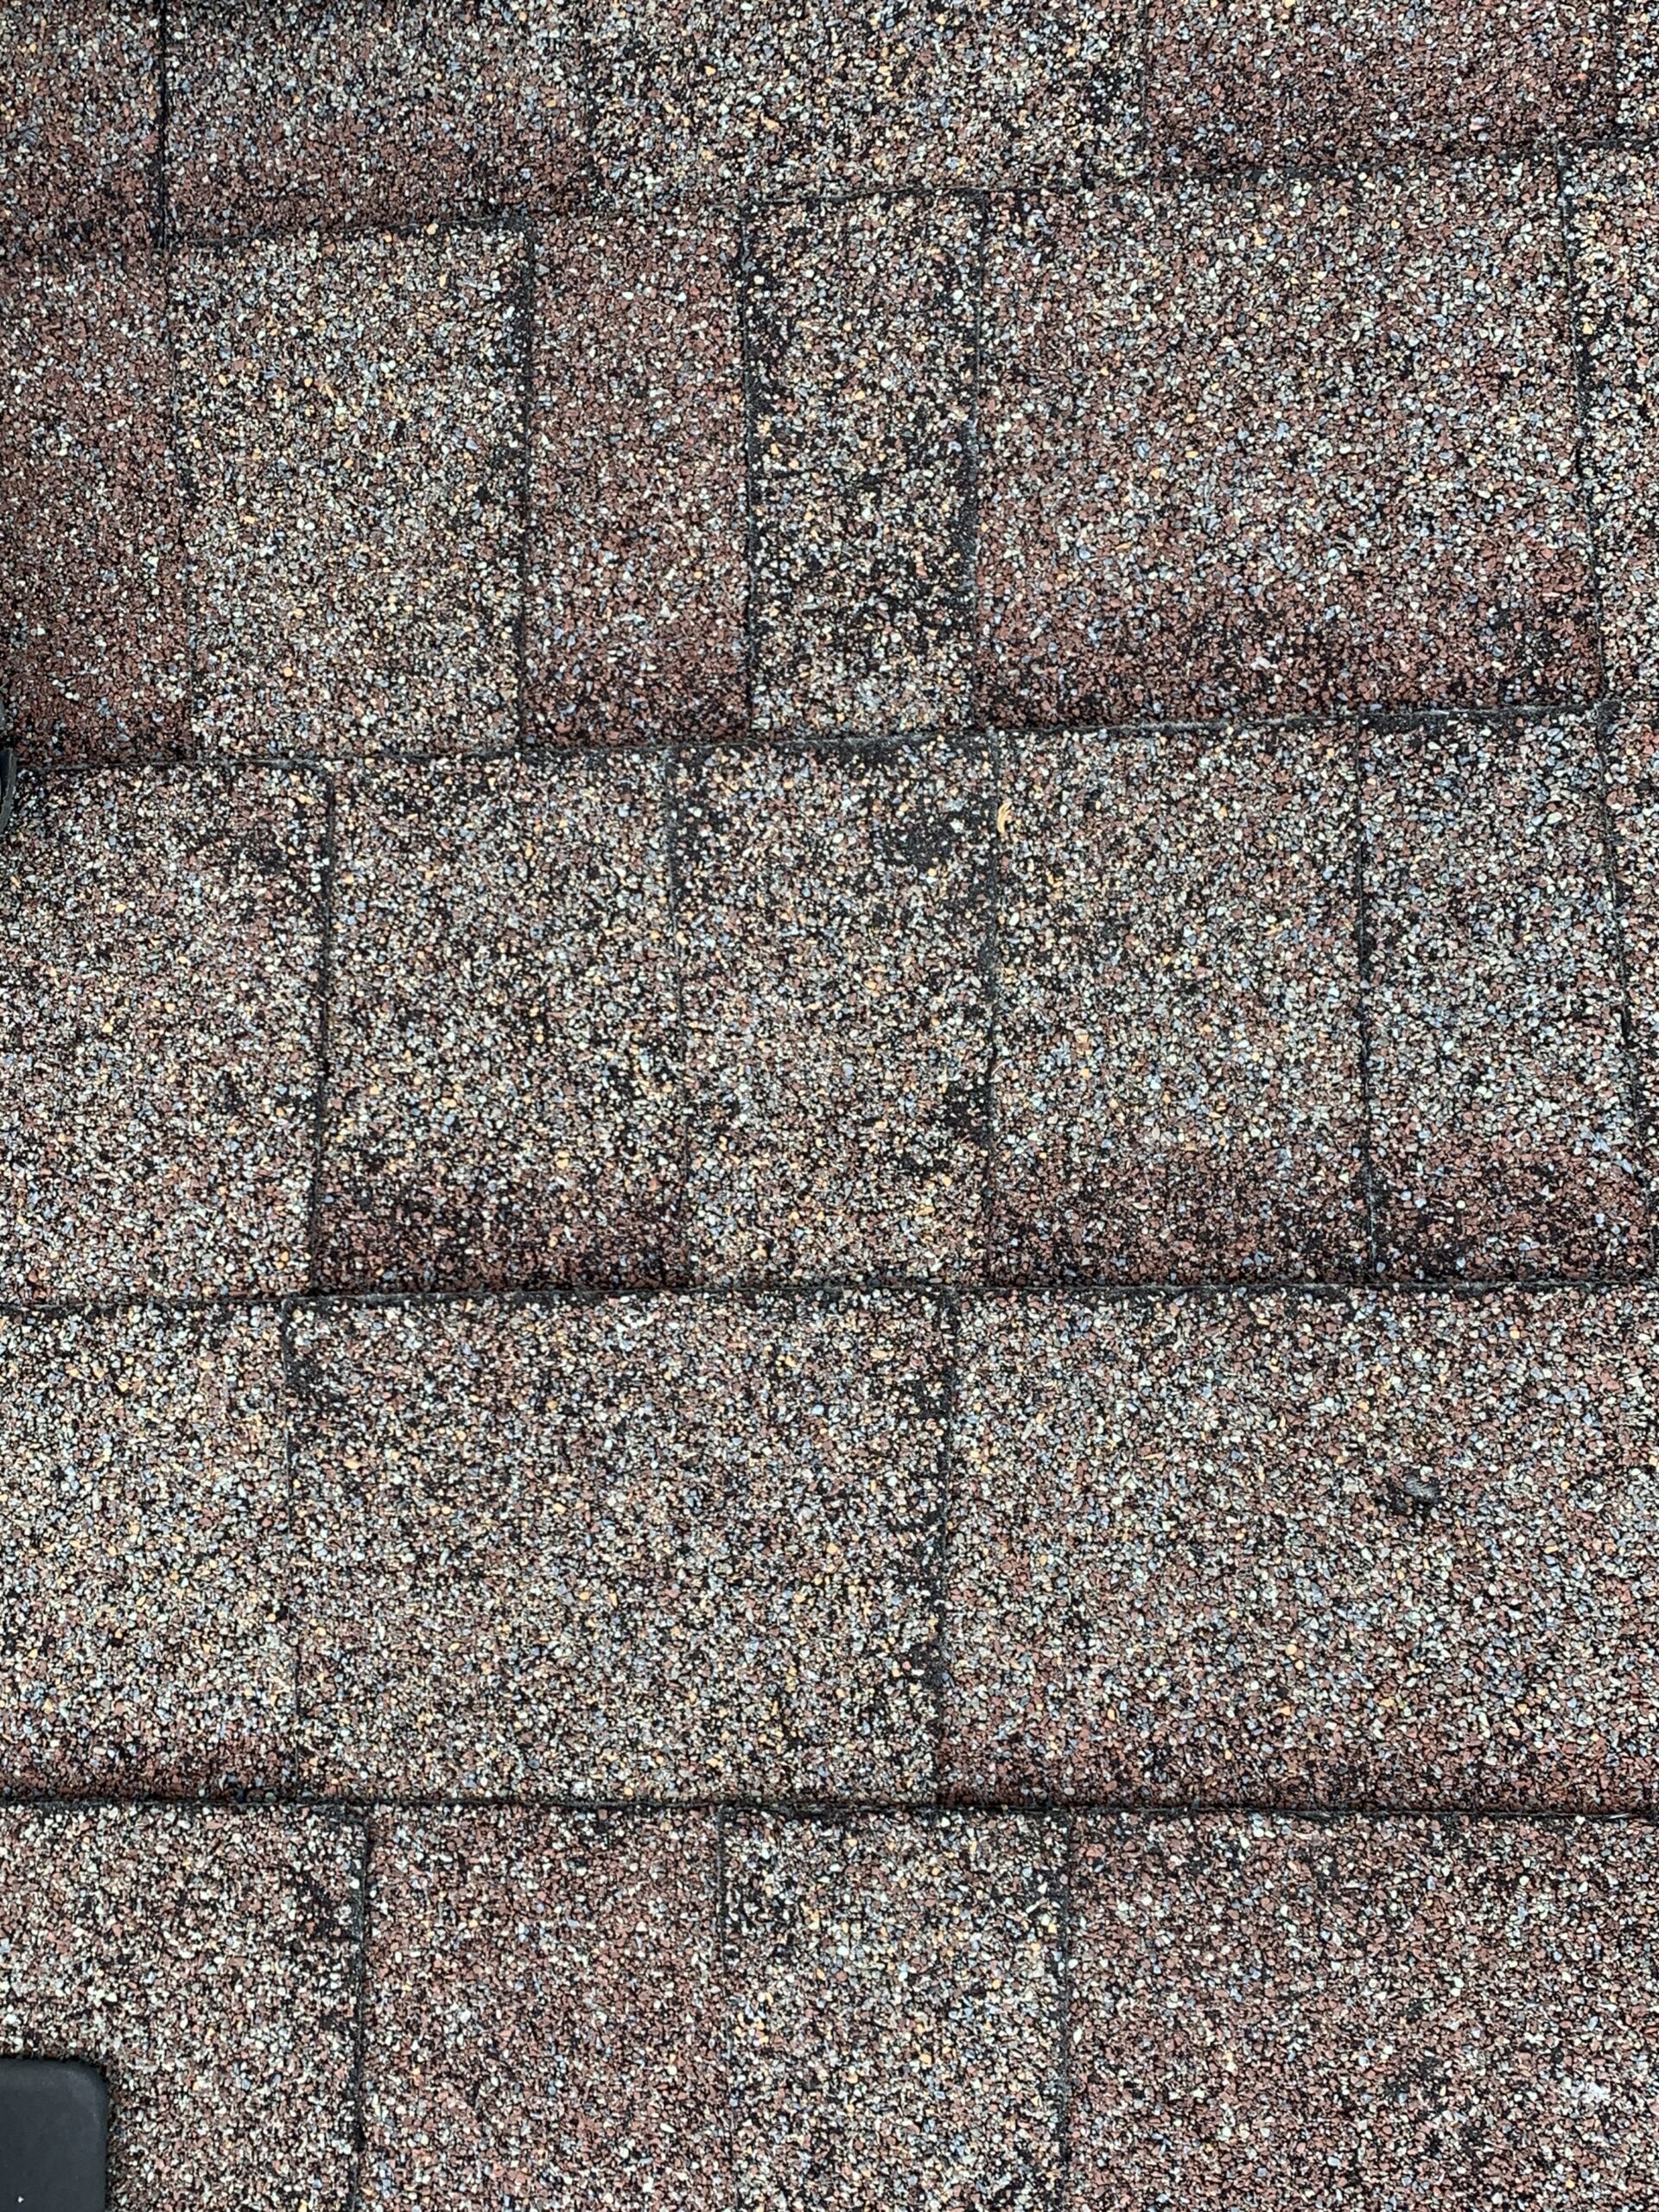 some hail damages to this gray dimensional shingles